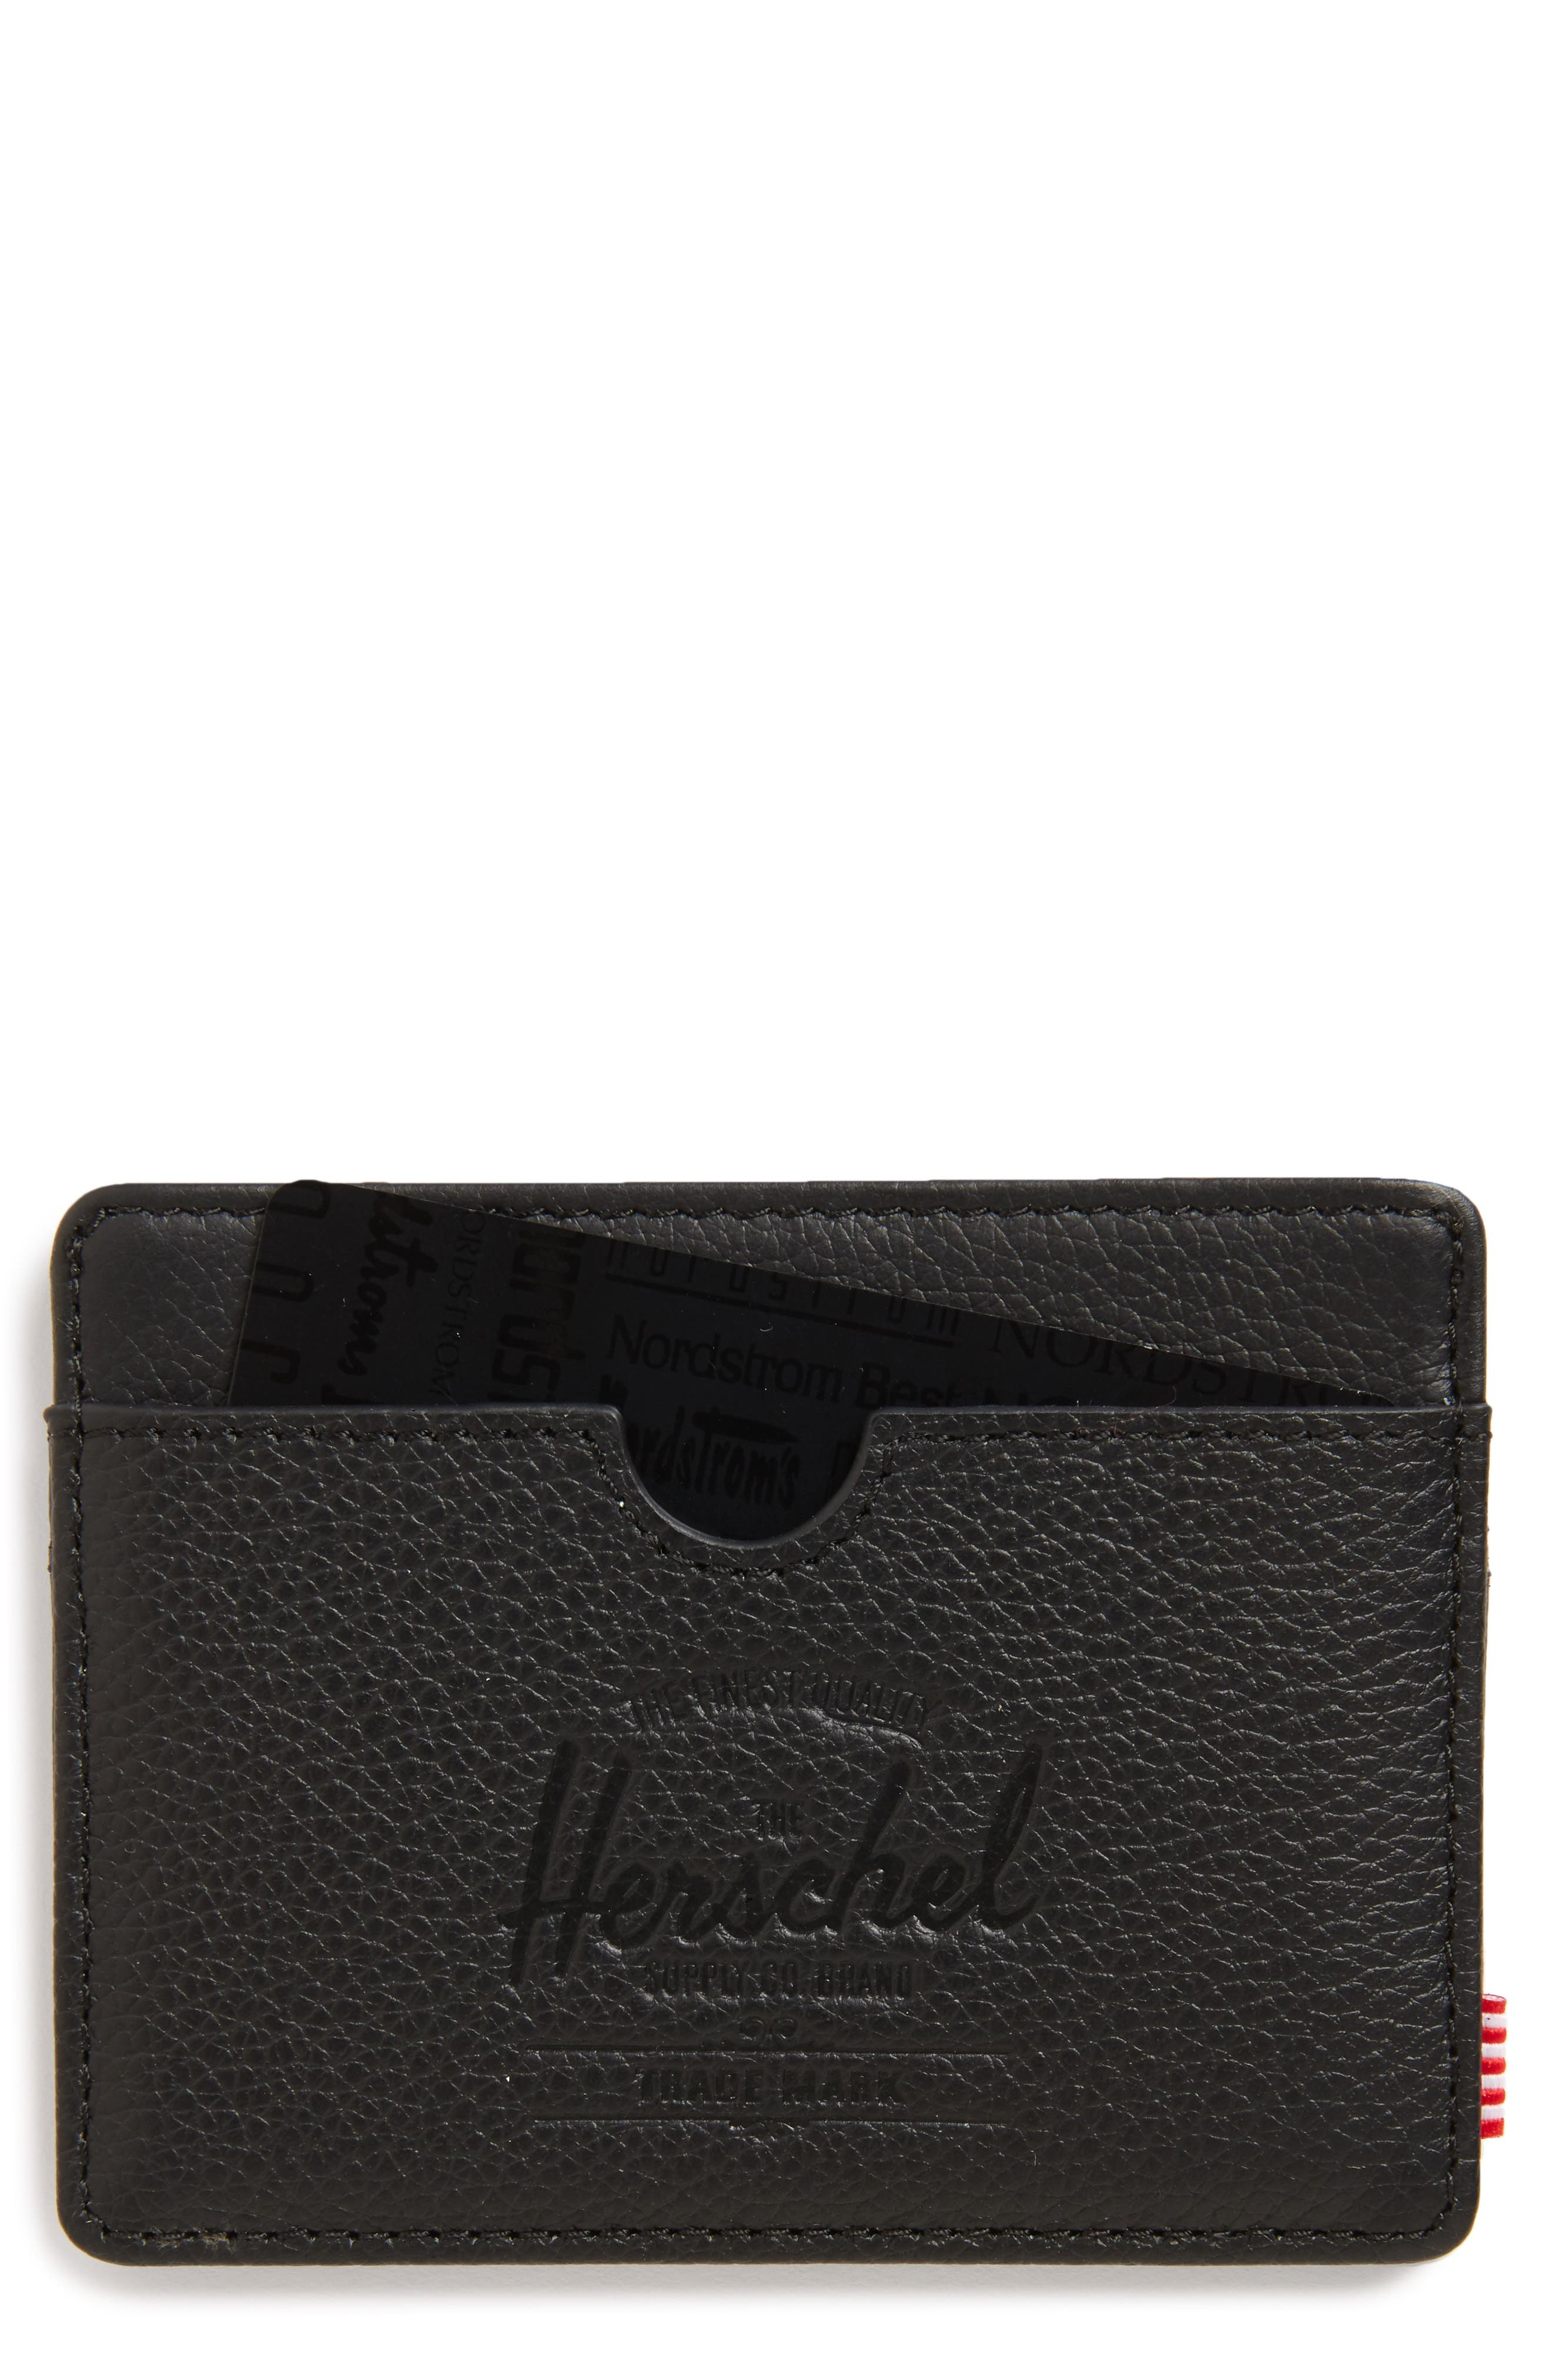 Charlie Leather Card Case,                         Main,                         color, Black Leather